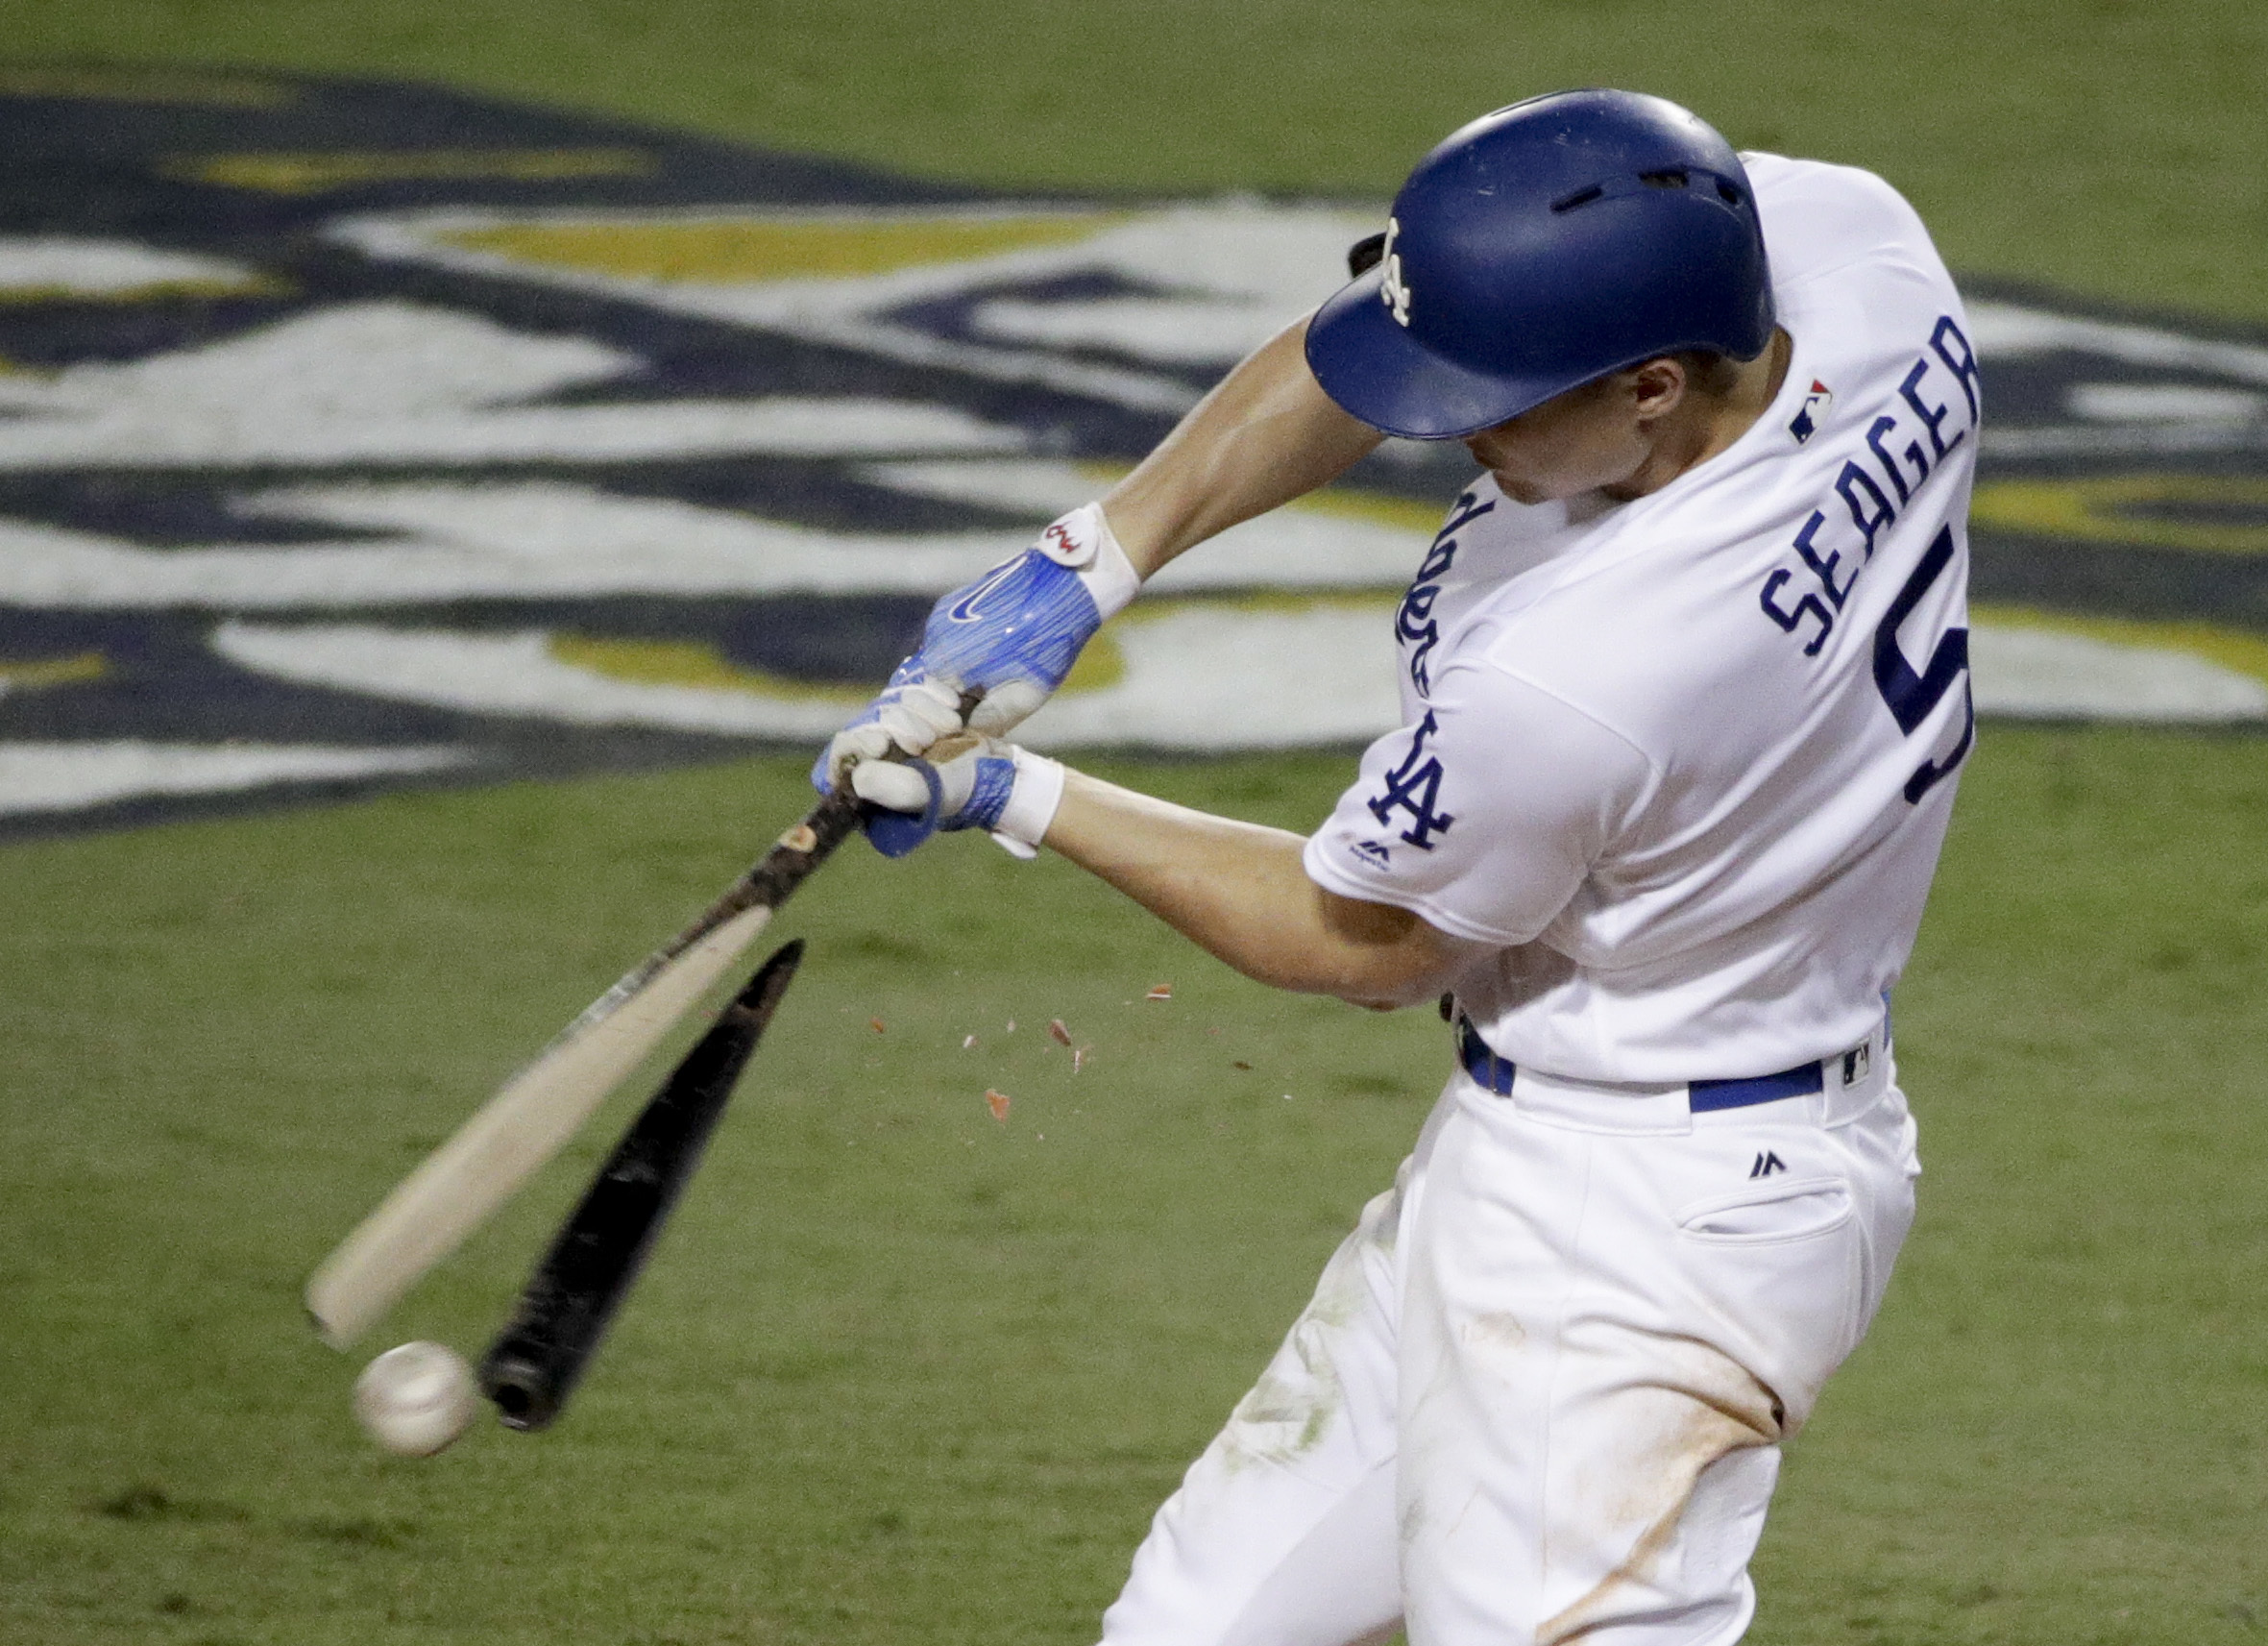 <div class='meta'><div class='origin-logo' data-origin='AP'></div><span class='caption-text' data-credit='(AP Photo/Jae C. Hong)'>Los Angeles Dodgers' Corey Seager break his bat and grounds out against the Houston Astros during the sixth inning of Game 7 of baseball's World Series Wednesday, Nov. 1, 2017.</span></div>